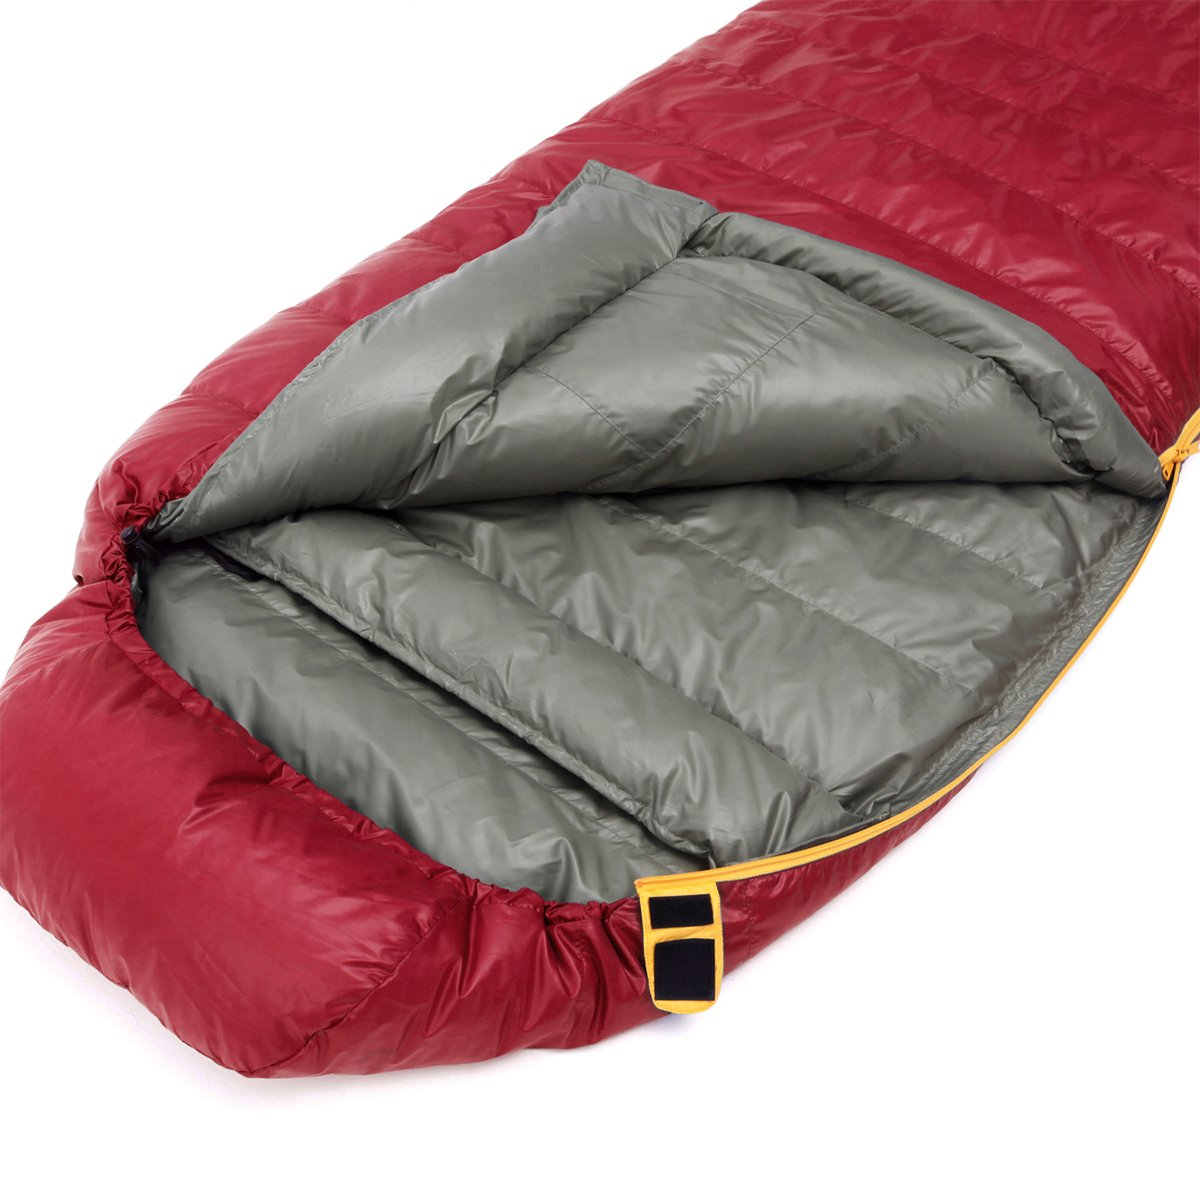 KingCamp Duck Down Lightweight Compact -4 ℉ Sleeping Bag with Collar,for Camping,Hiking,Backpacking